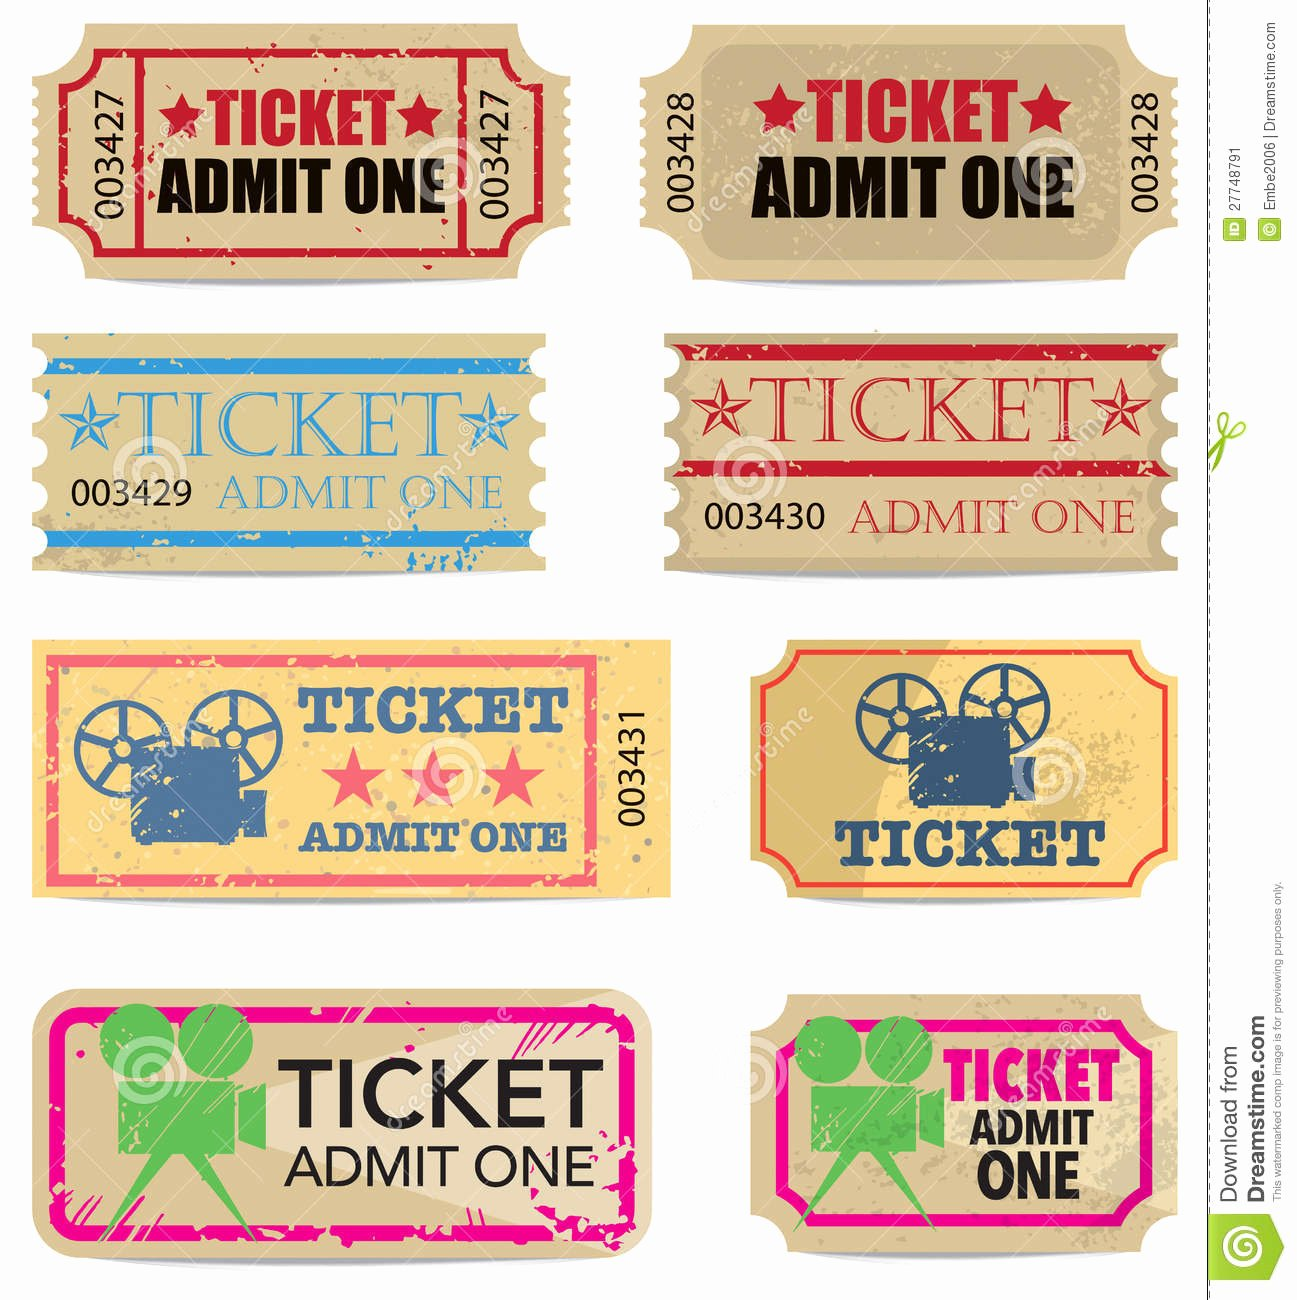 Vintage Movie Ticket Template Best Of Vintage Tickets Stock Vector Illustration Of Illustration